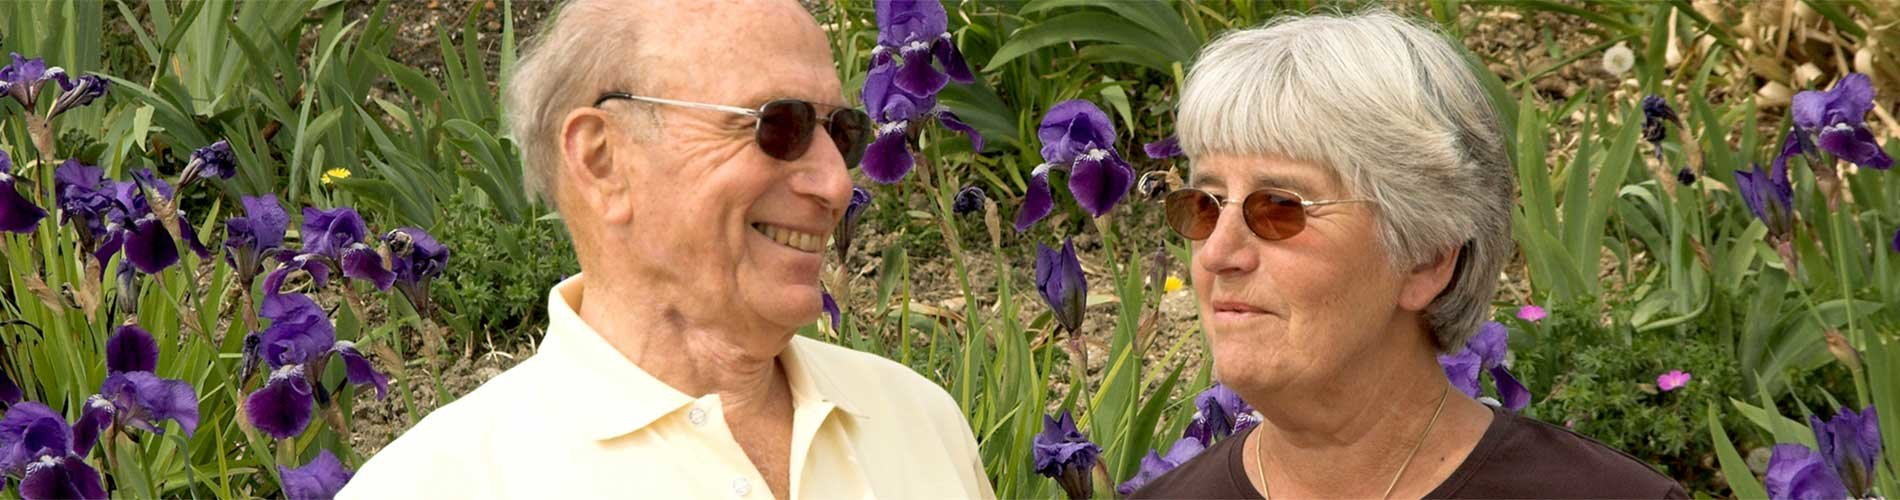 Man and woman both wearing glasses and smiling at each other in front of a bed of purple flowers.